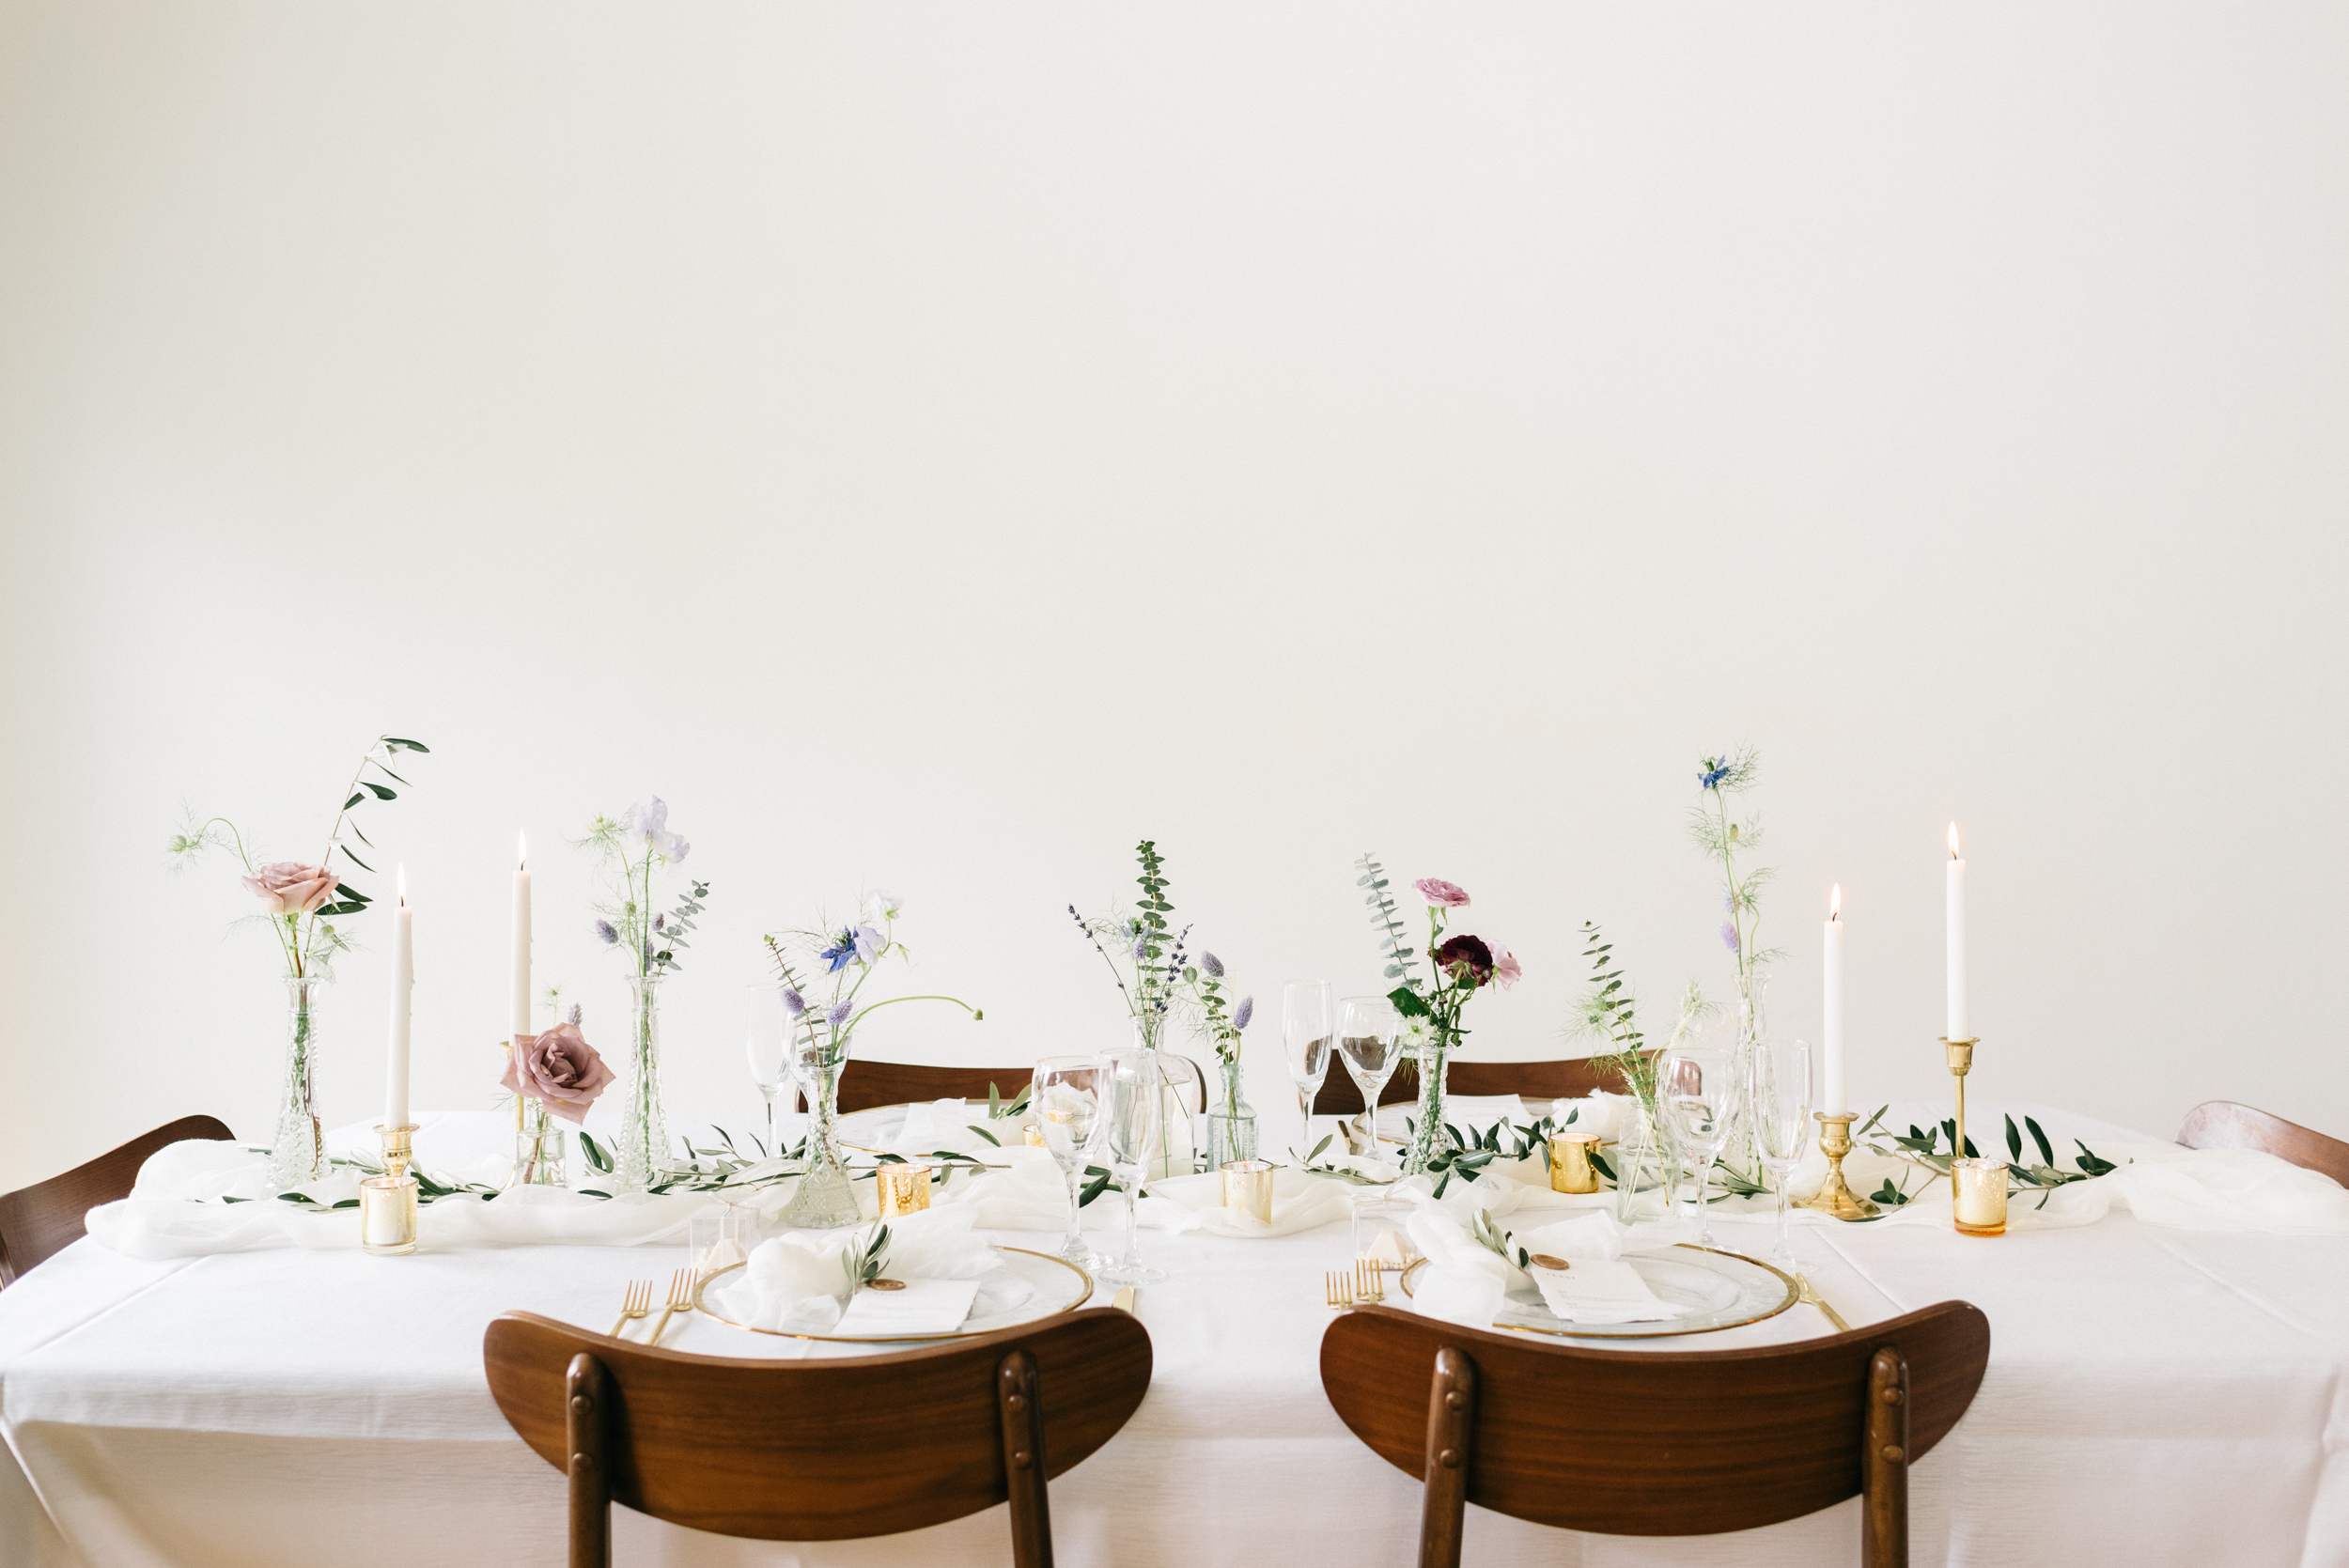 styled-tablescapes-86.jpg